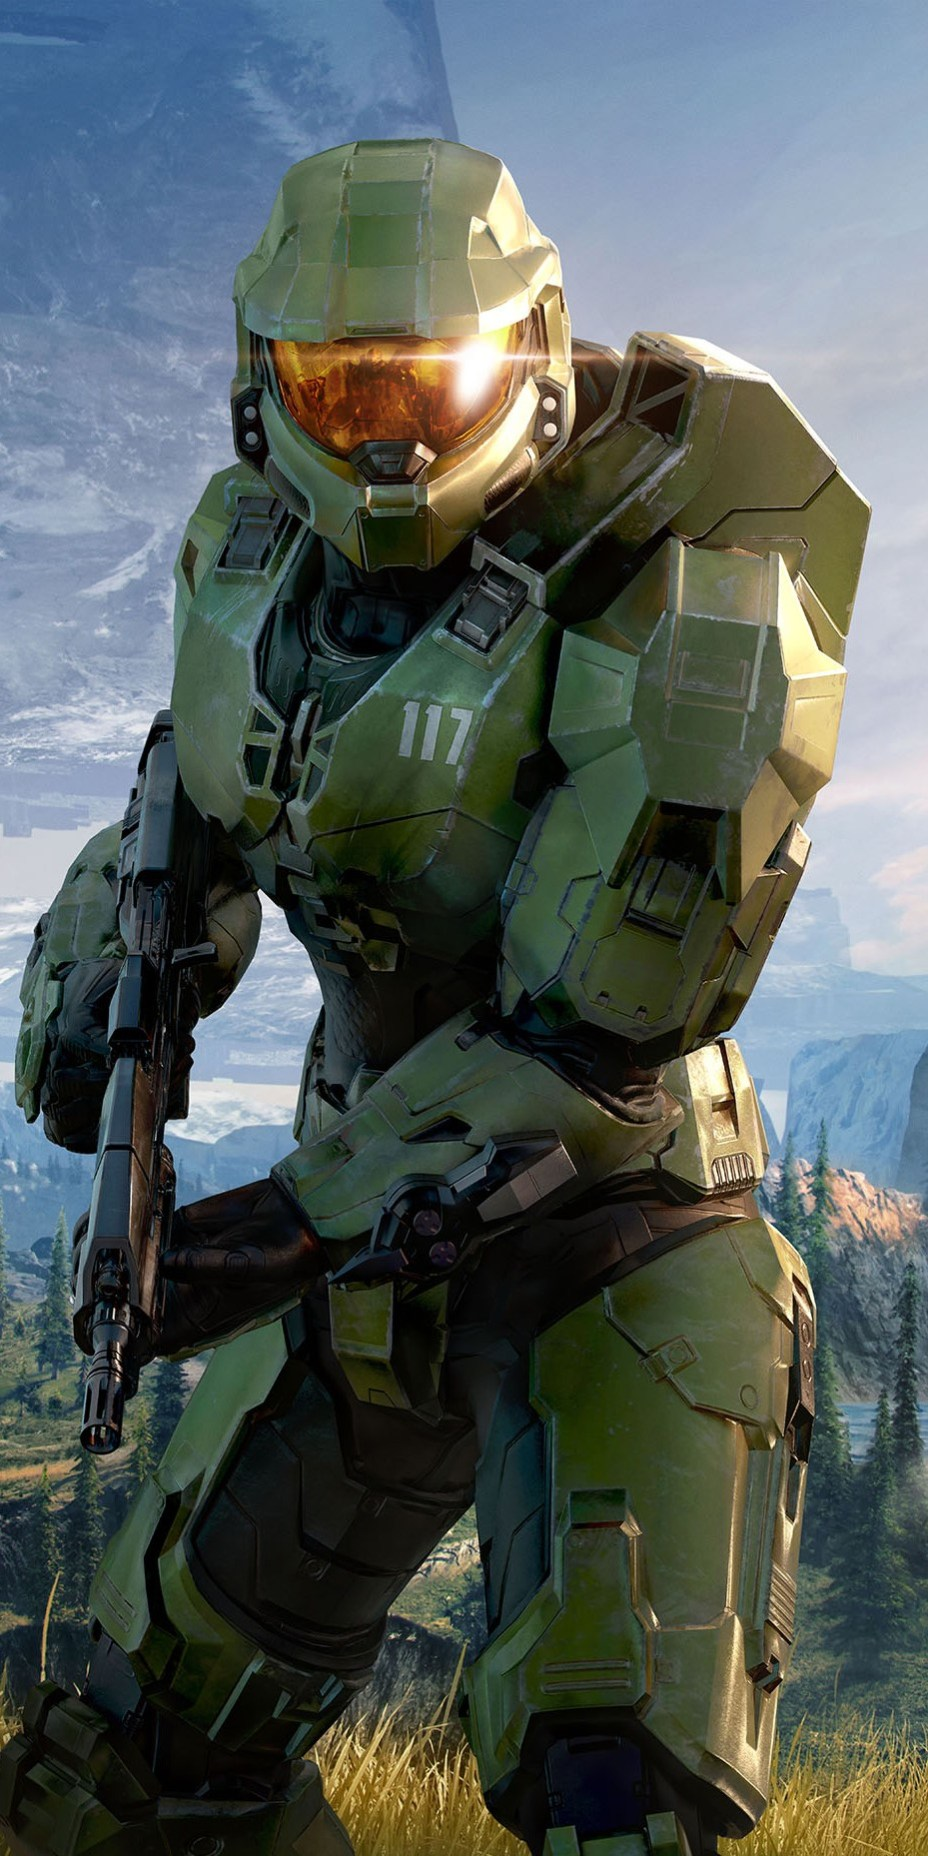 Halo Infinite Master Chief Halo Ring Wallpaper Wallpapers For Tech